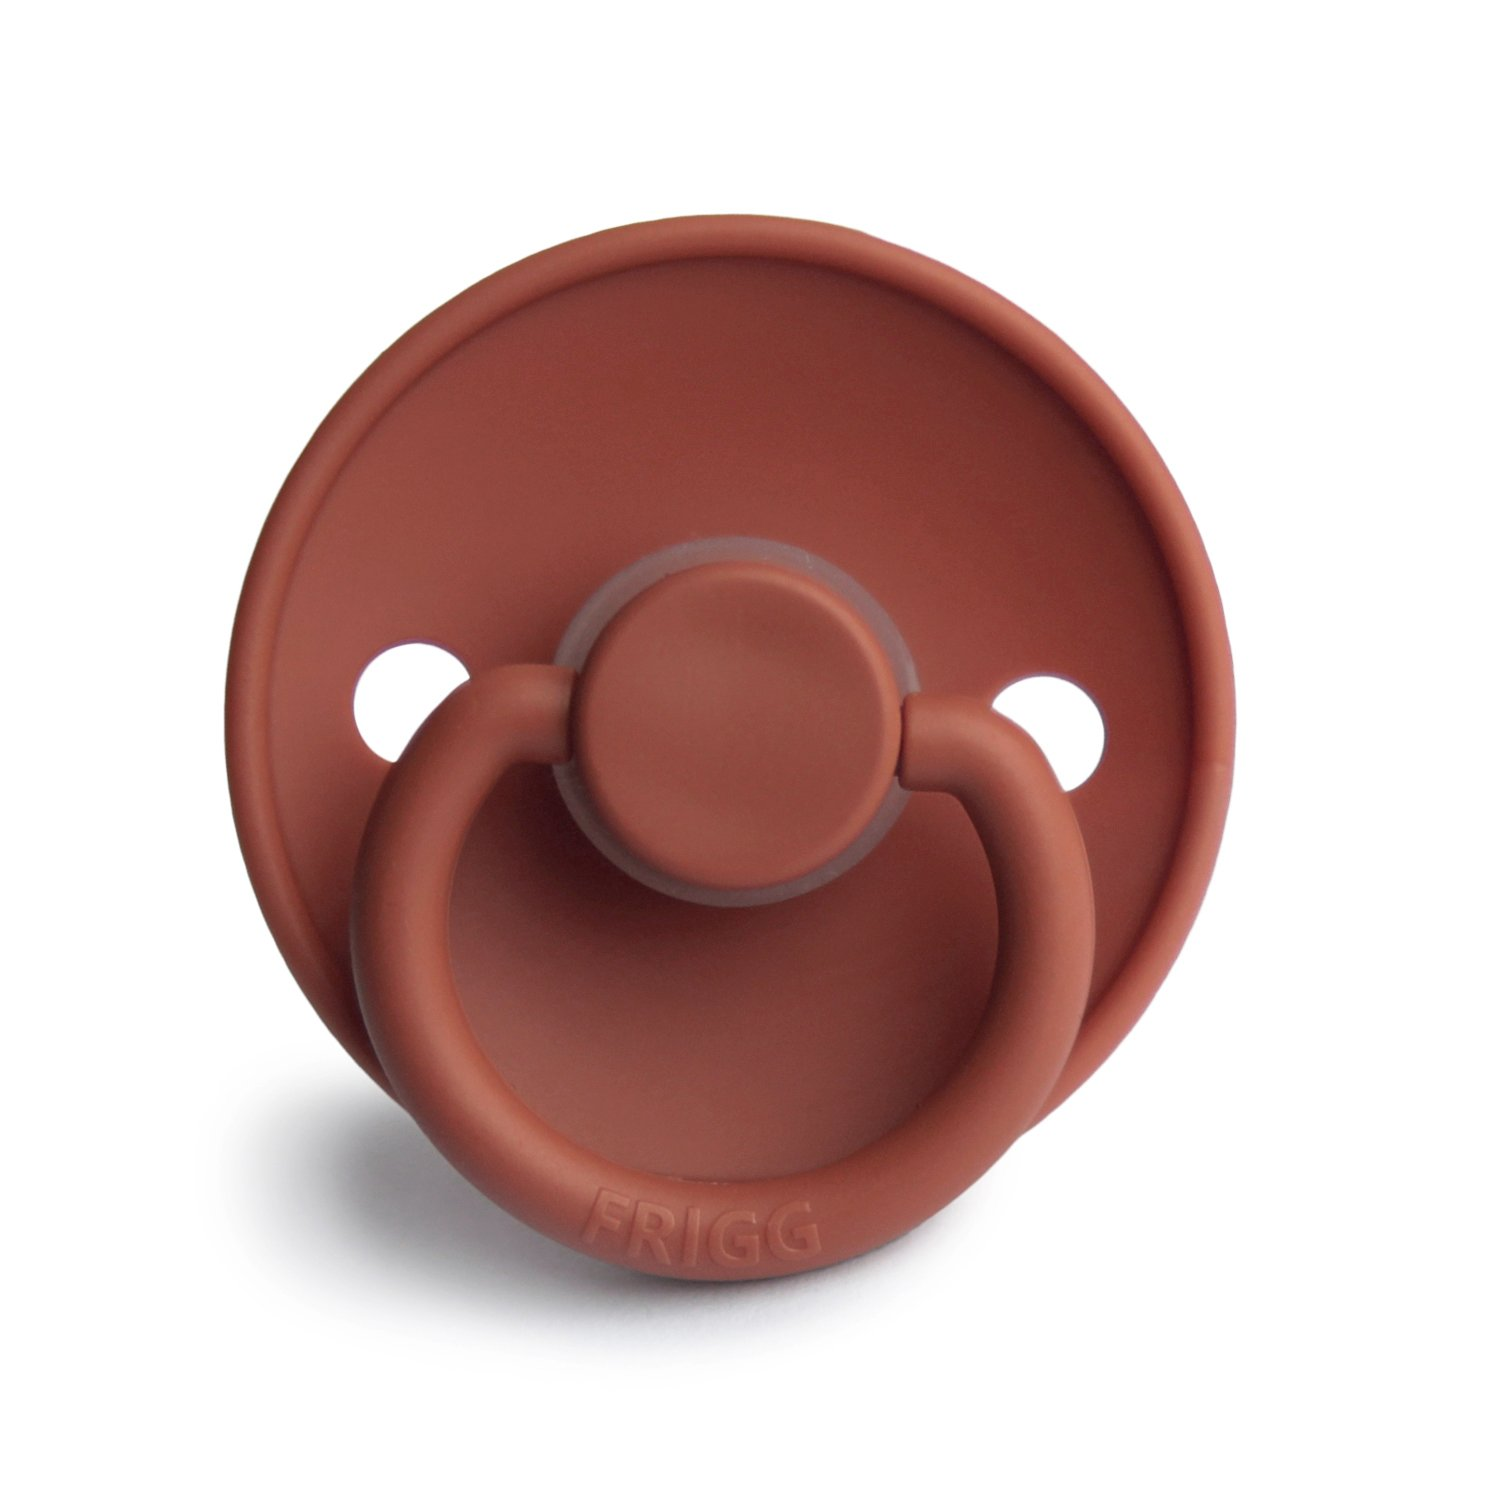 FRIGG Classic silicone - Baked Clay